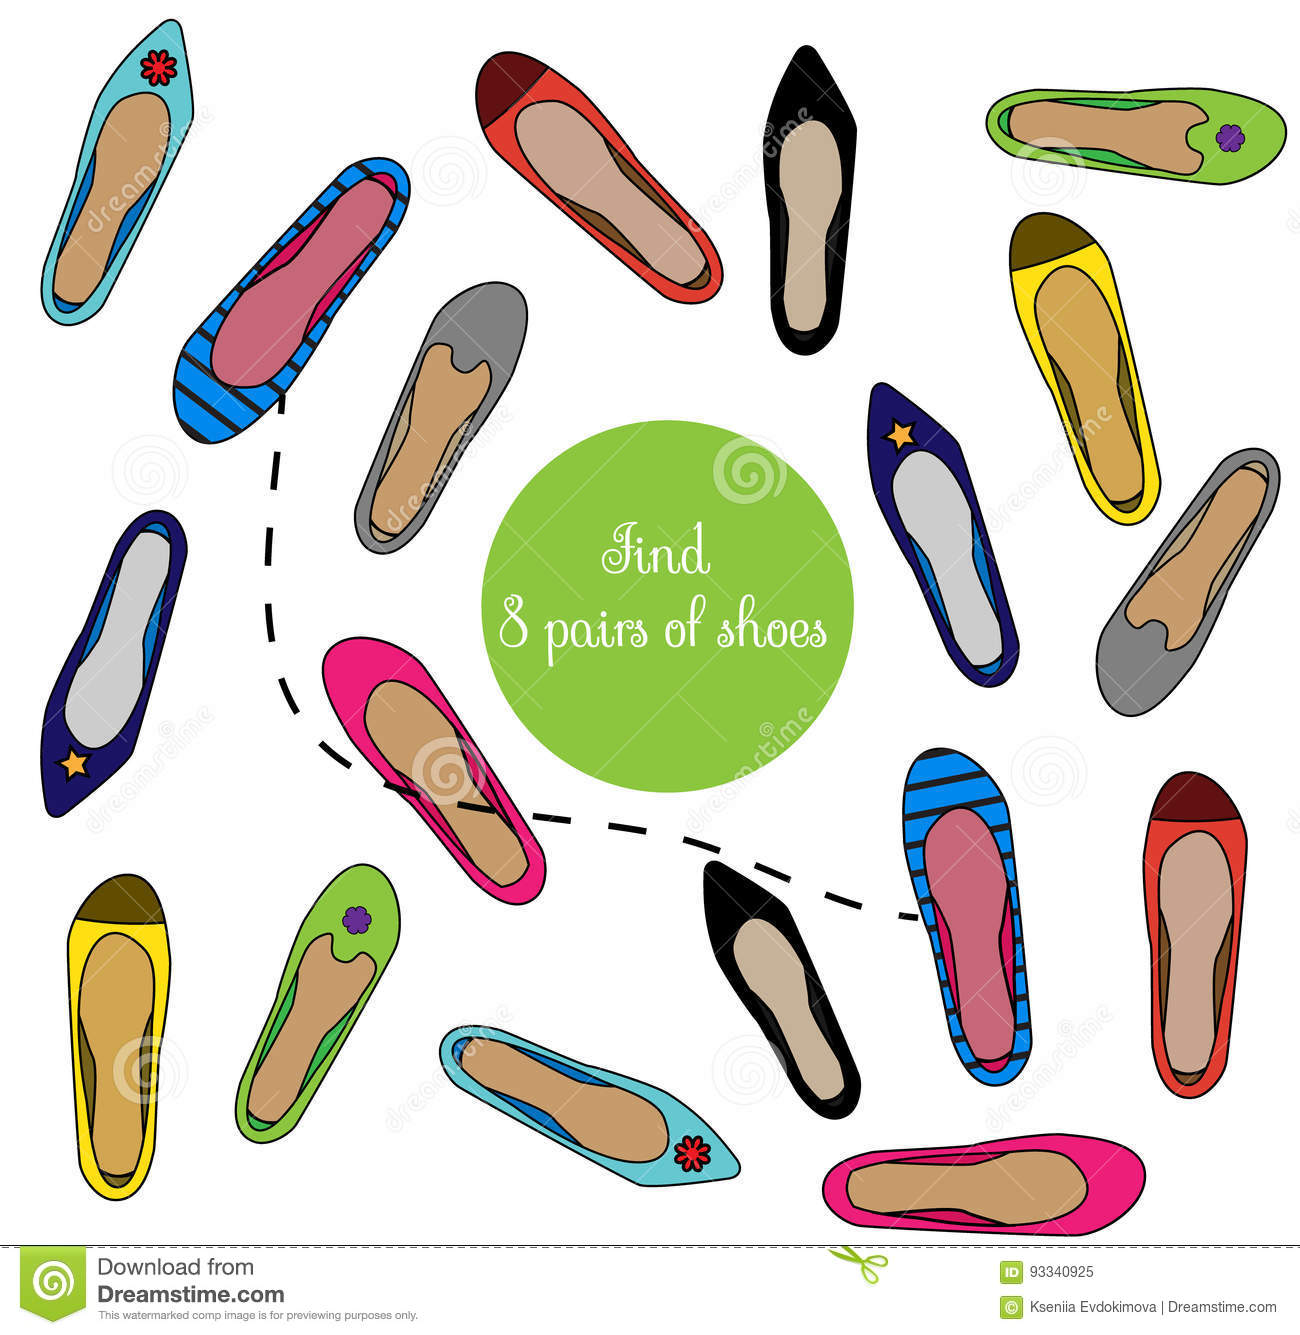 118c59365440 Find the same pictures children educational game. Find pairs of shoes shoes  kids activity